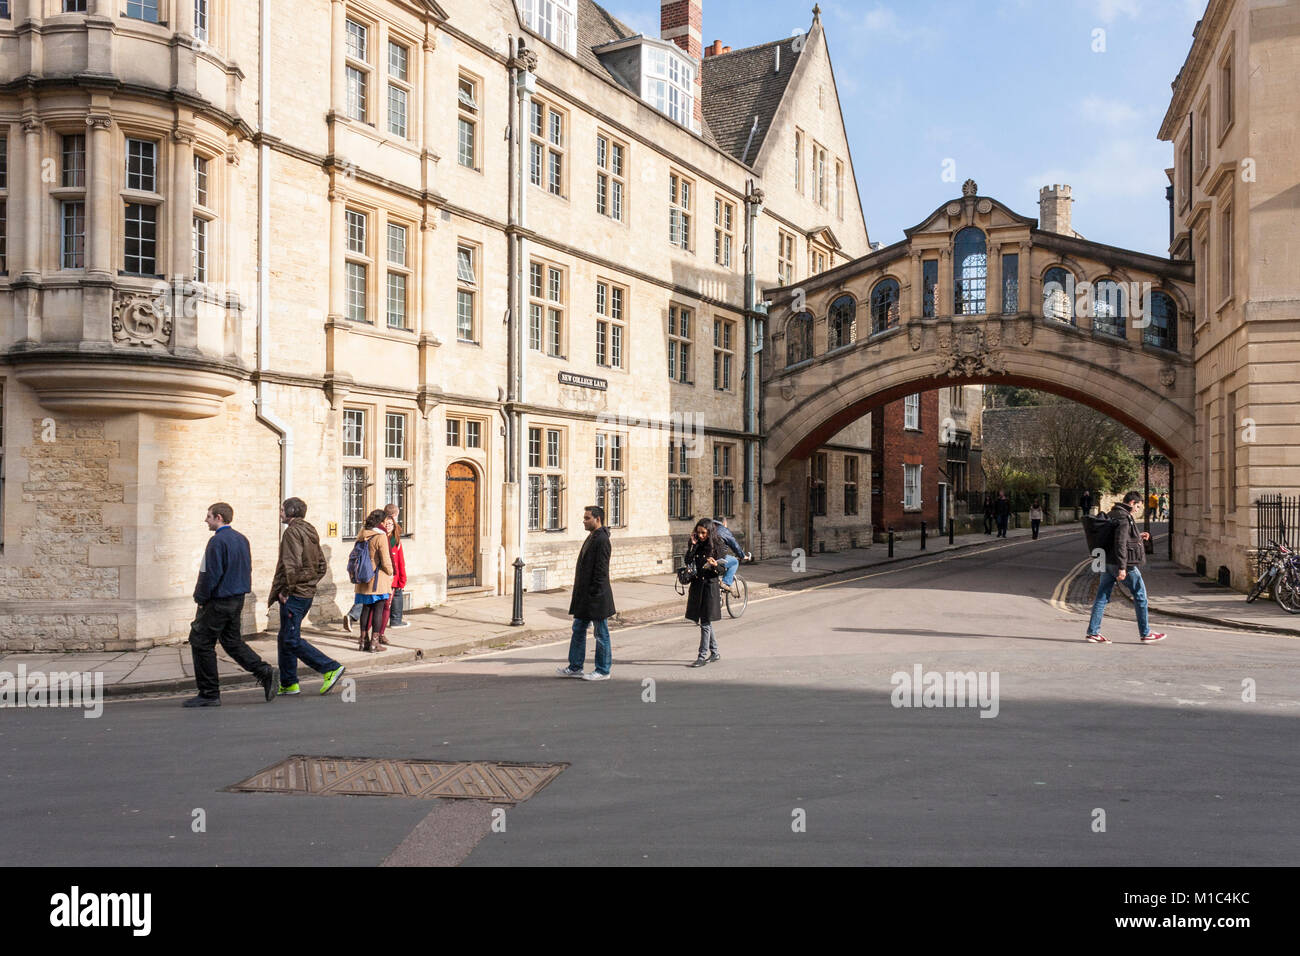 Hertford Bridge, commonly known as the Bridge of Sighs,  joins two parts of Hertford College at Oxford University, - Stock Image